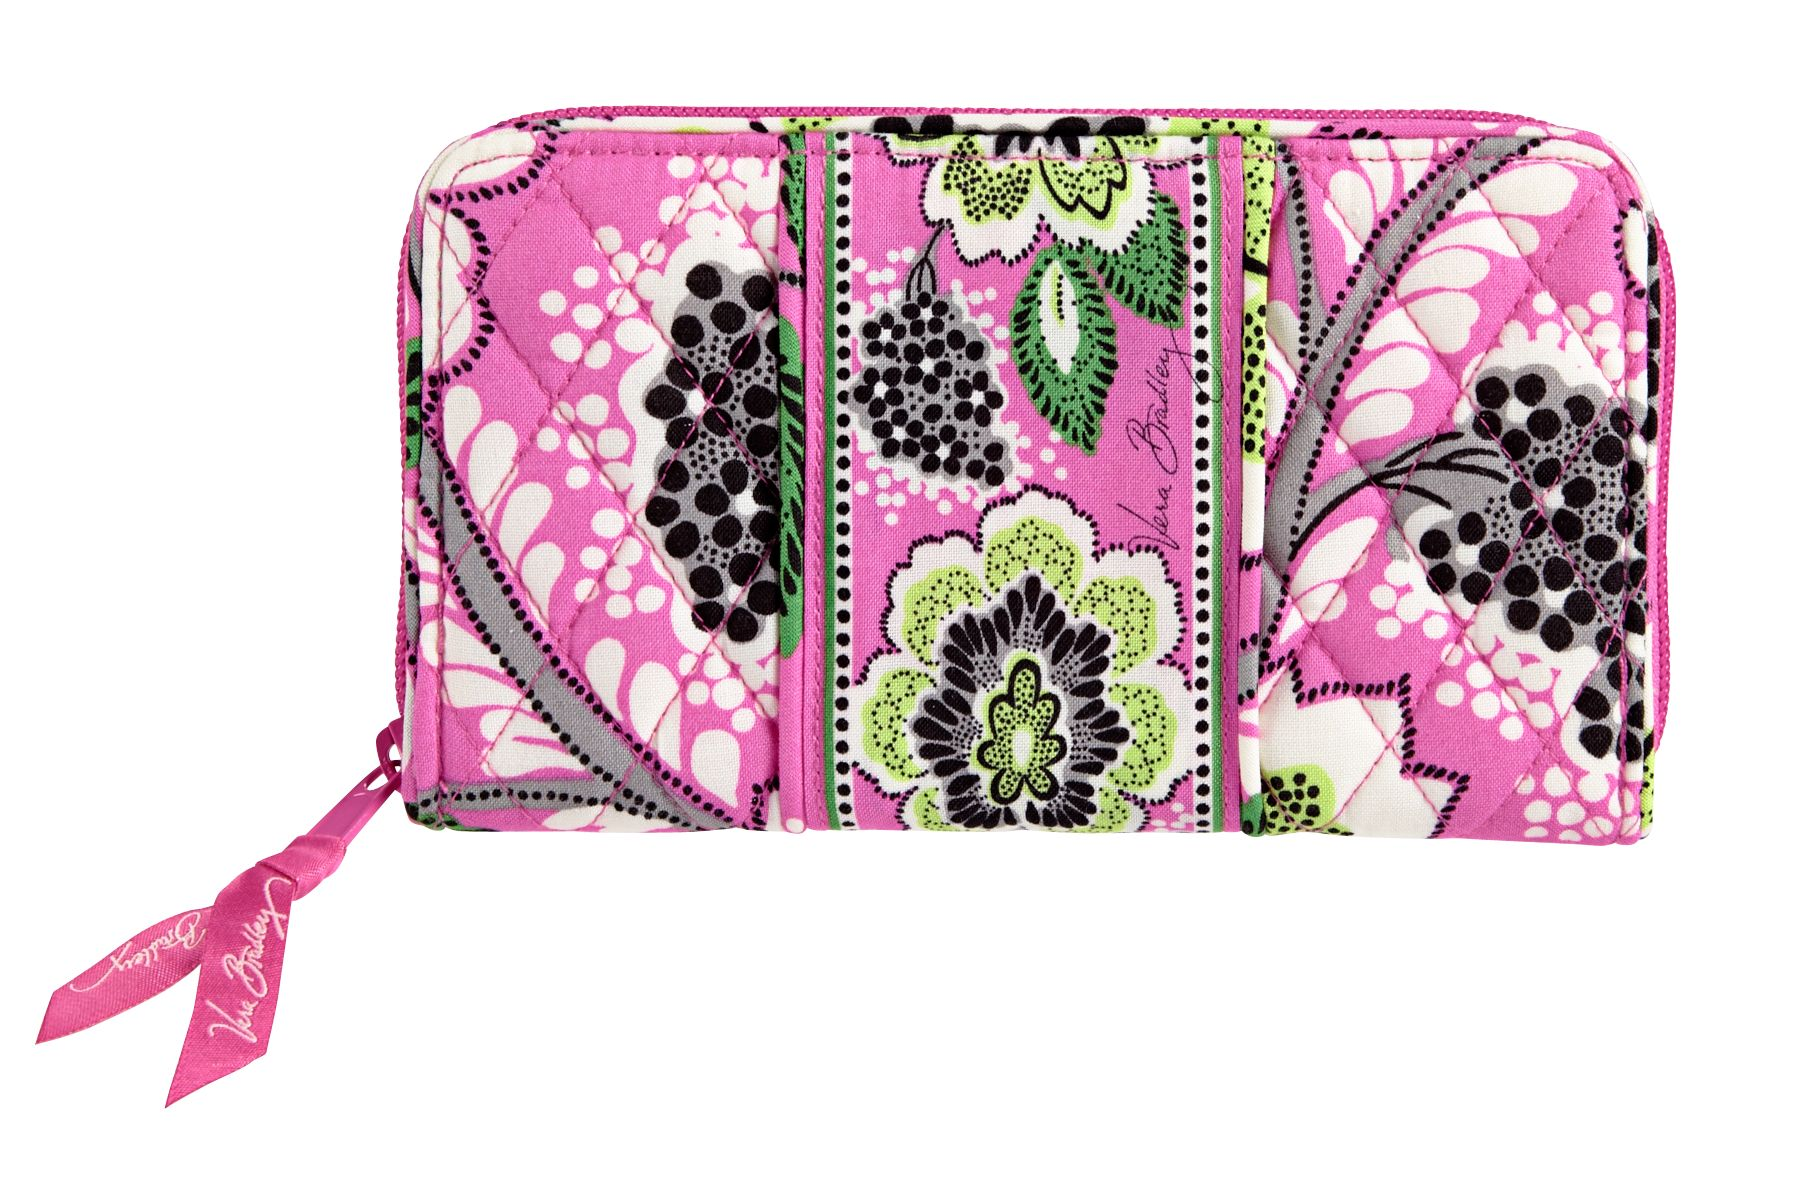 Vera Bradley Accordion Wallet in Priscilla Pink